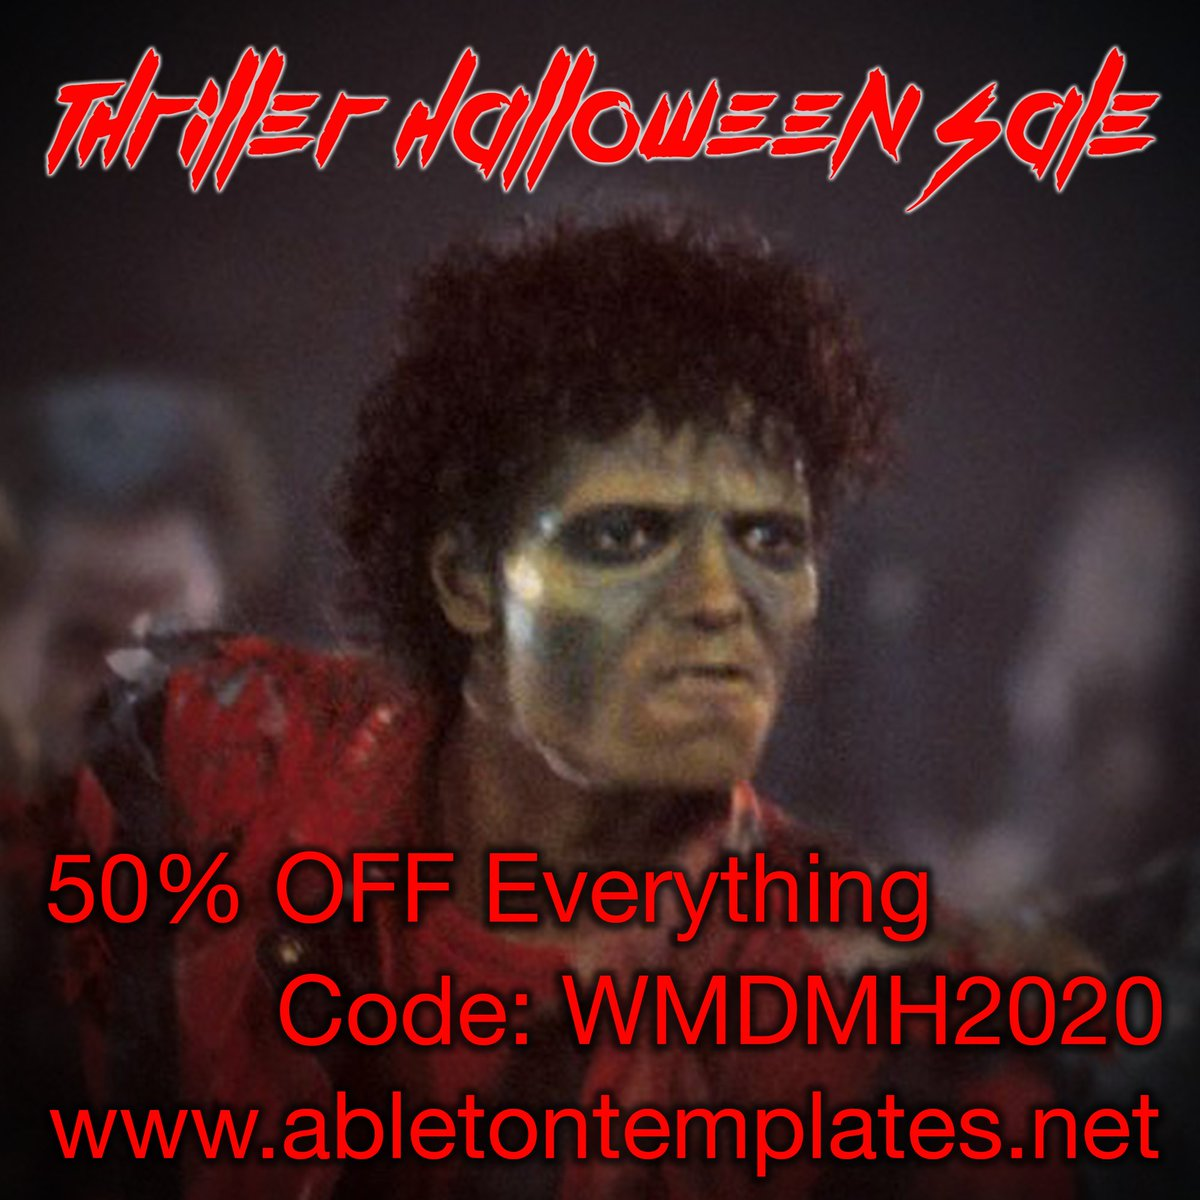 The Thriller sale is here, Get 50% OFF with code WMDMH2020 https://t.co/rMPEG2f5vT #musicproduction #ableton #ableton10 #abletontemplates #abletonlive https://t.co/2RkZxY0Pno